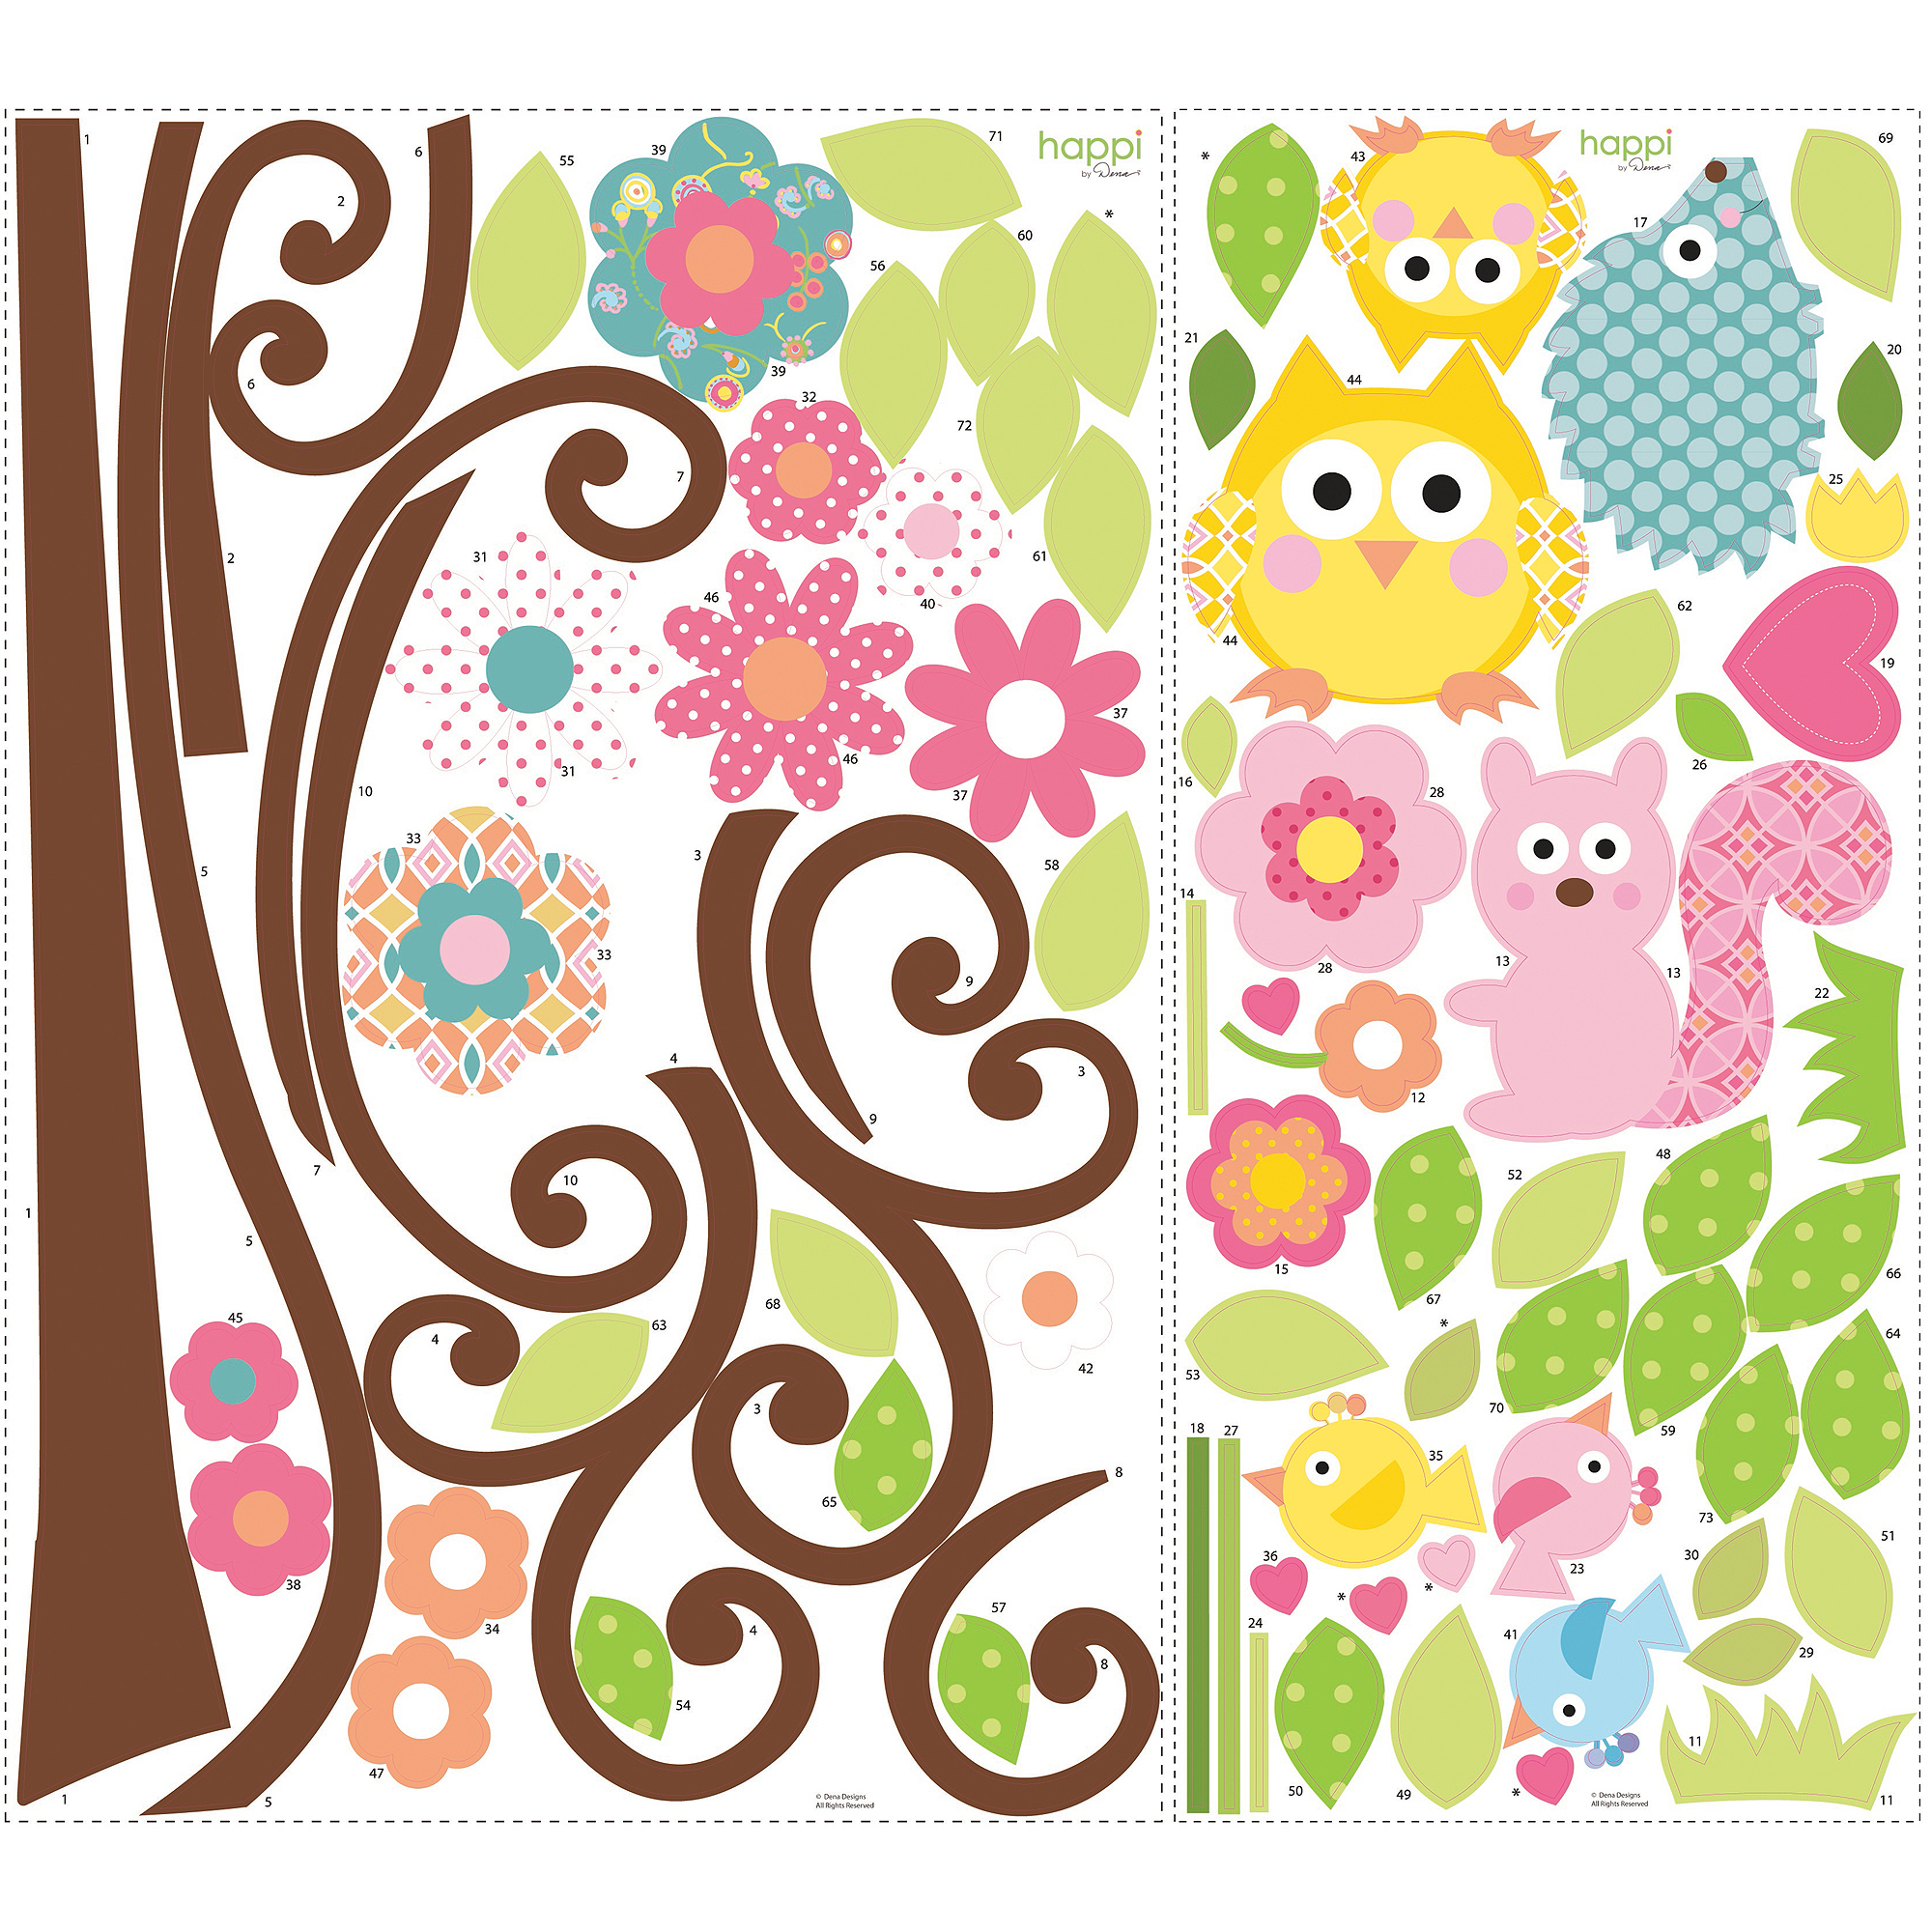 RoomMates - Peel & Stick Wall Decals Mega-Pack, Scroll Tree RMK1439SLM